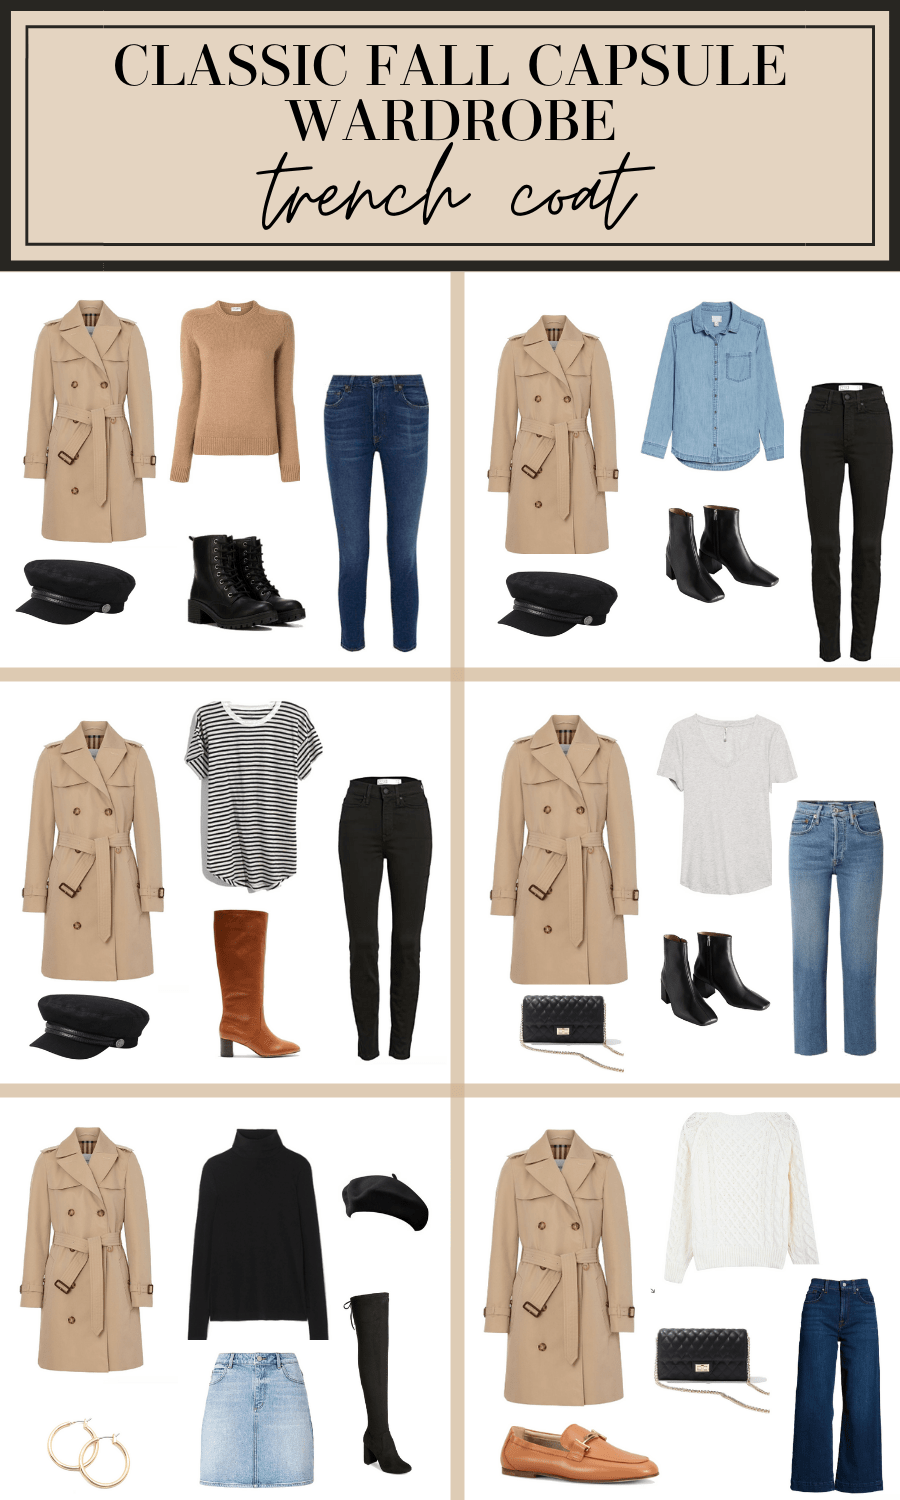 trench coat for fall outfit ideas